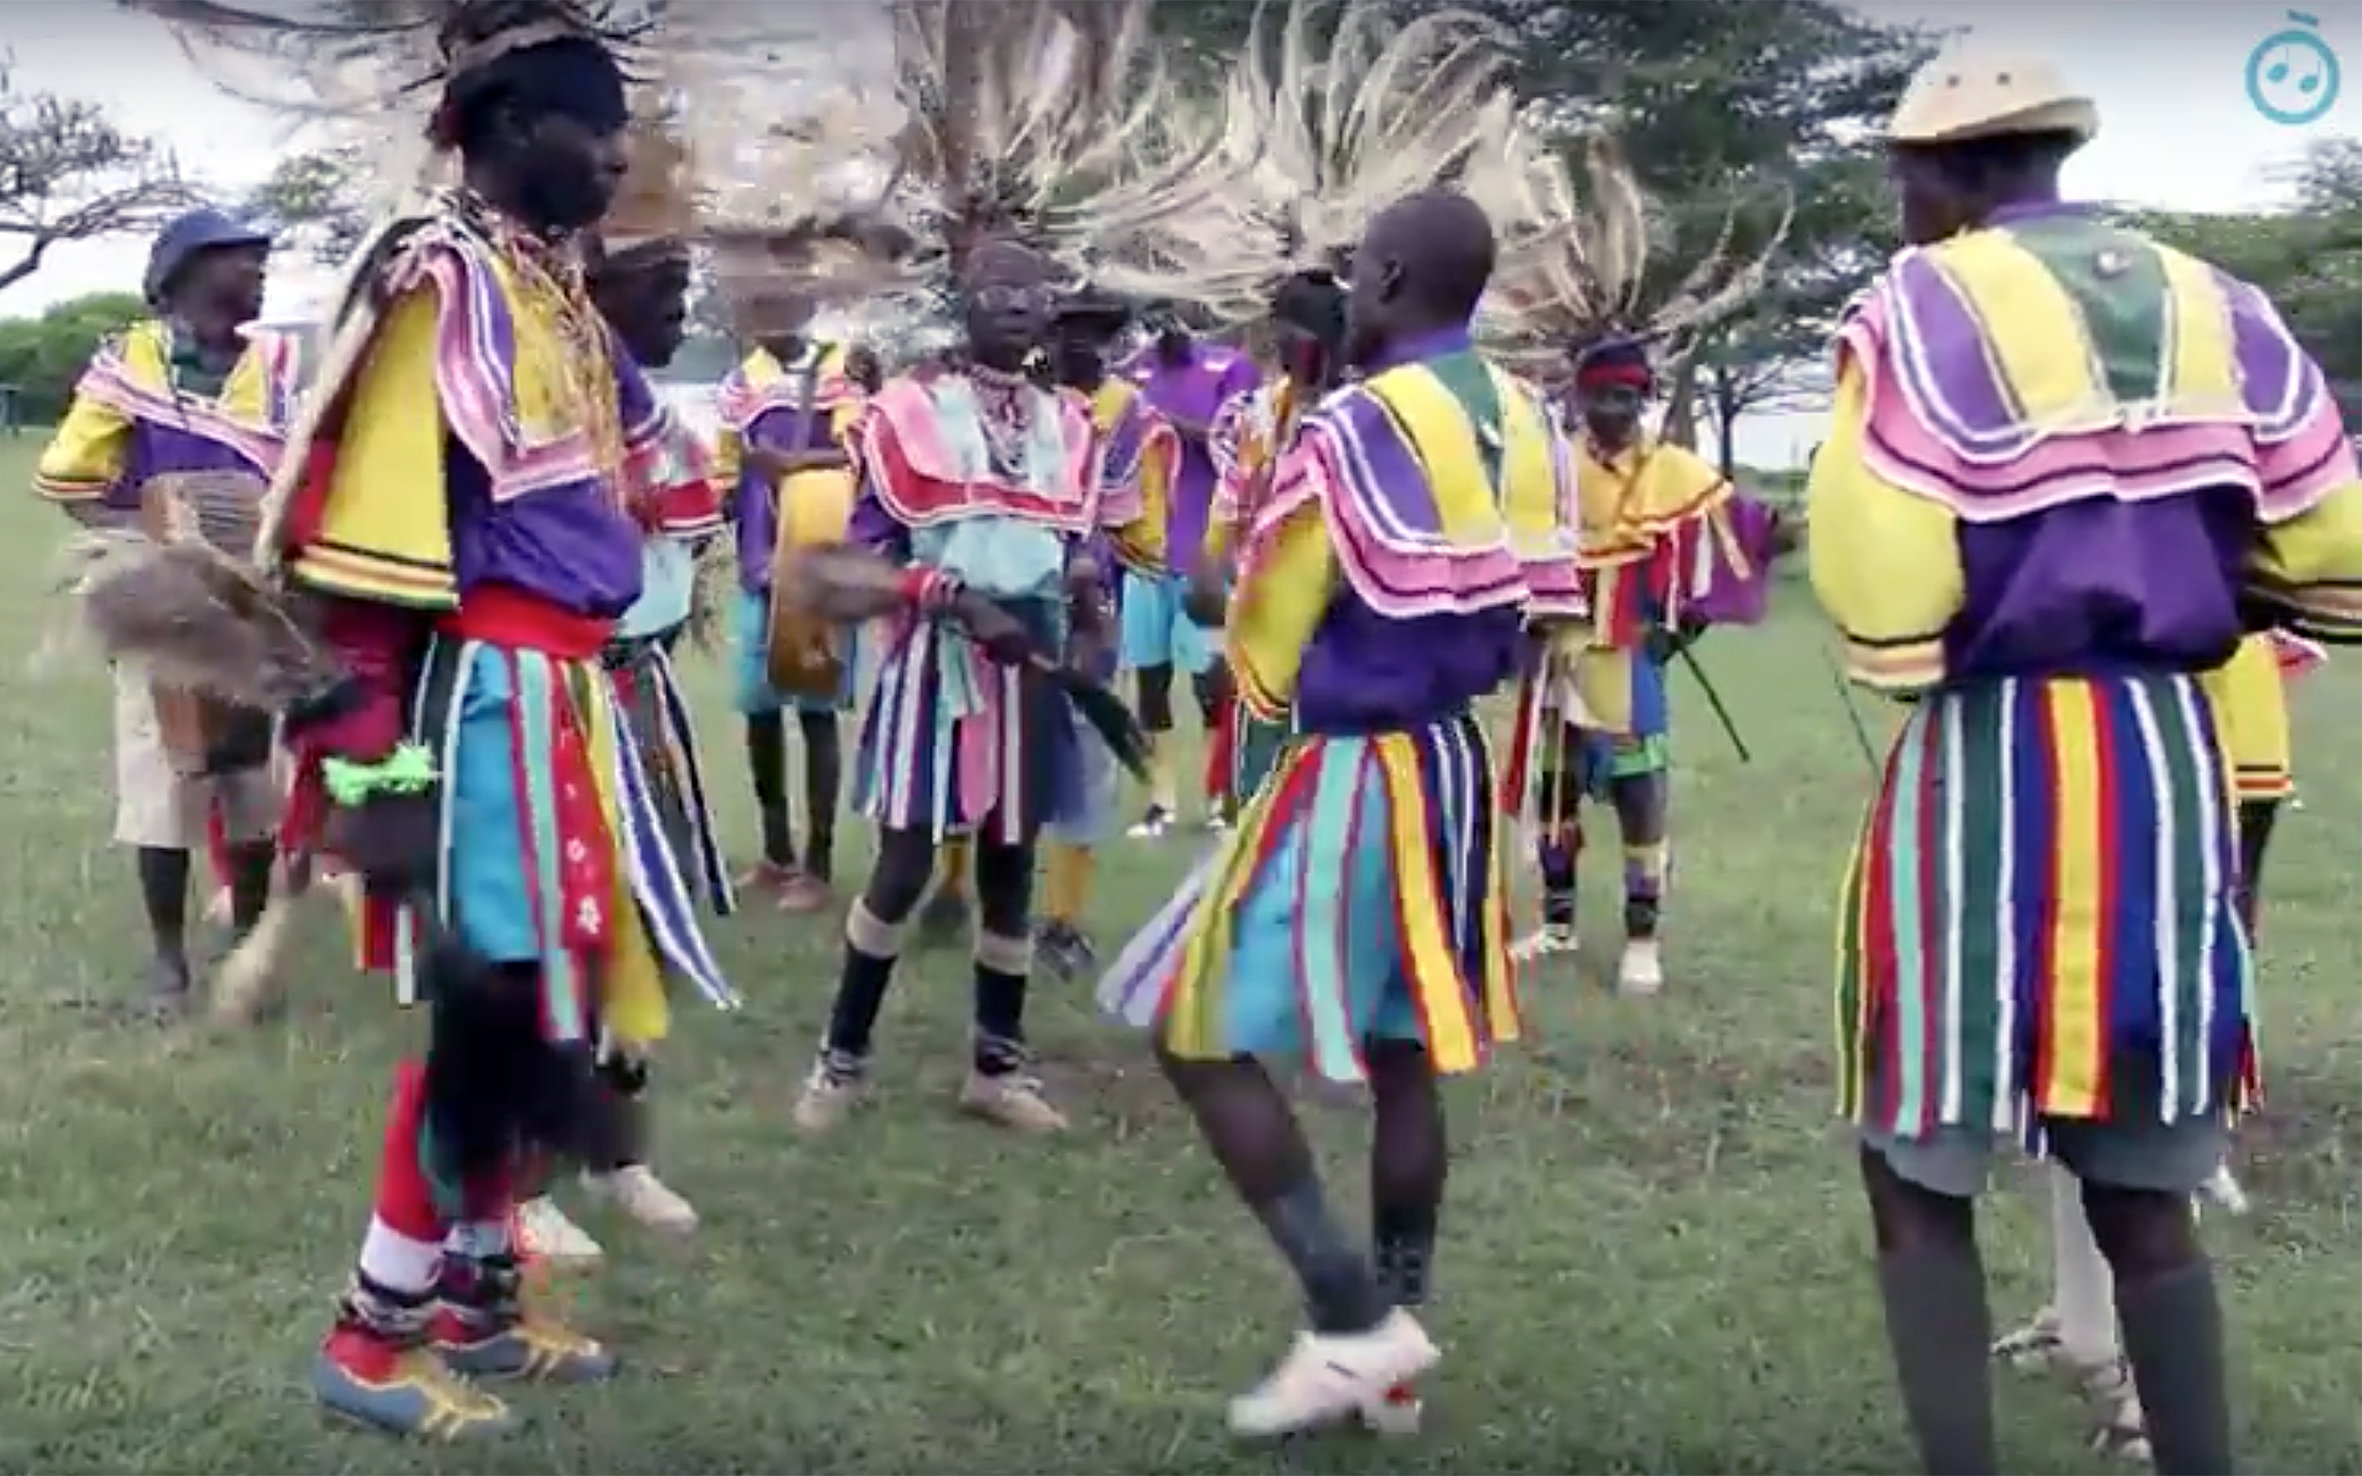 490.Kochia Dances / Kenya - Kochia Dances are traditional dances performed by the Kochia people from Kenya.